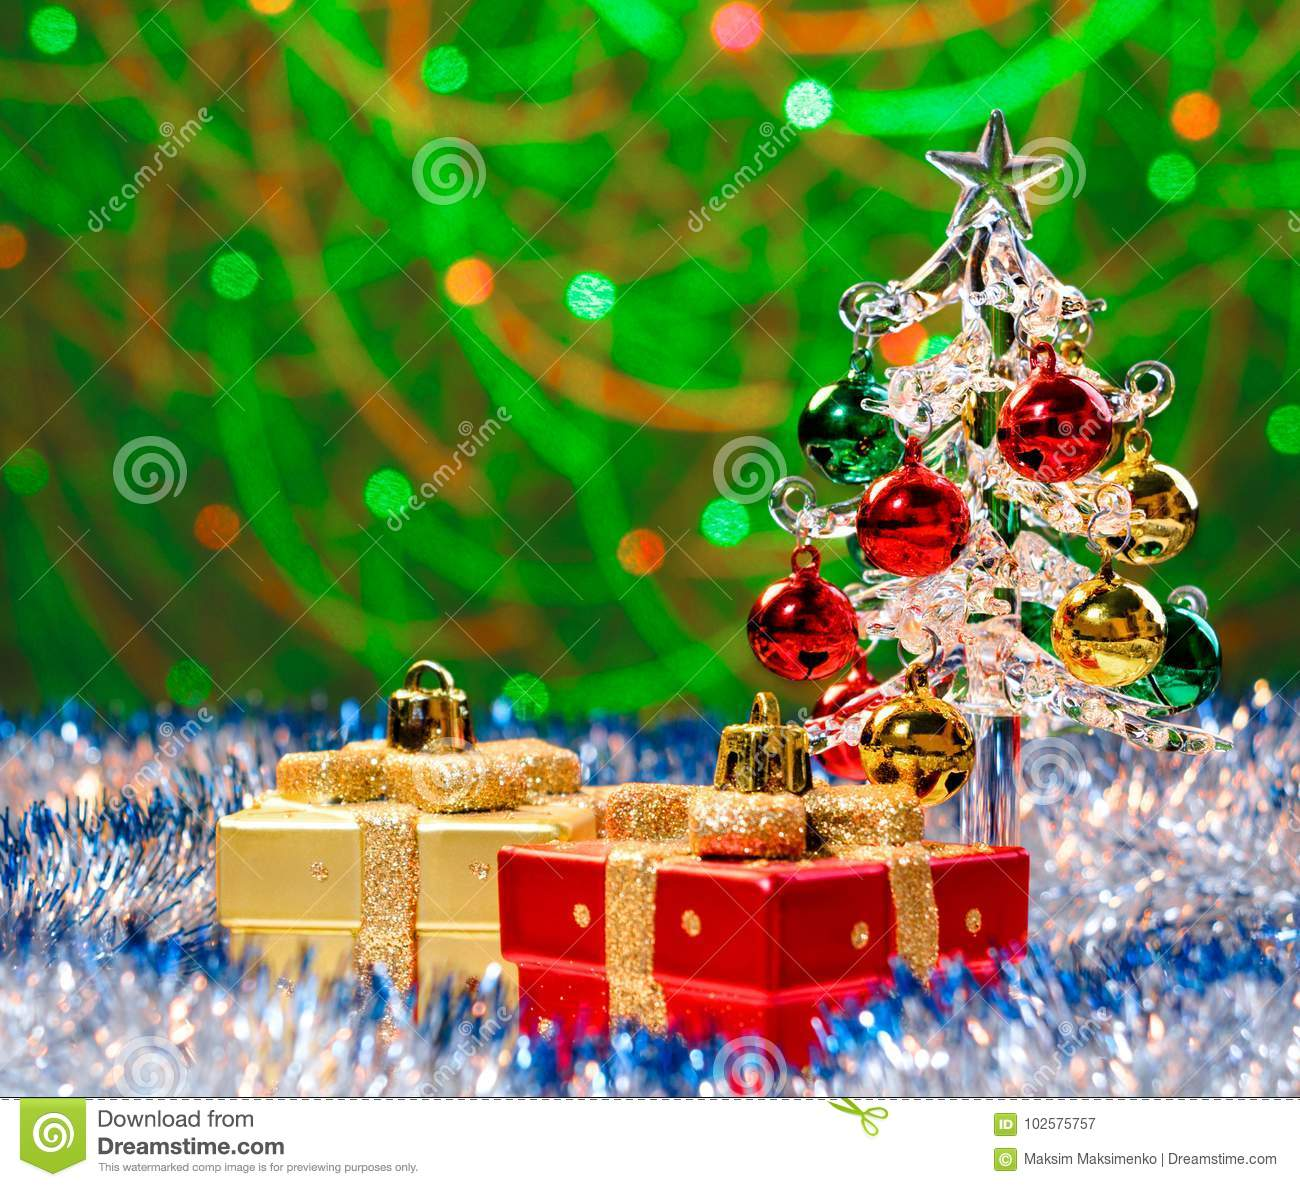 download glass christmas tree standing in the sparkling tinsel with christmas decorations on background with blurred